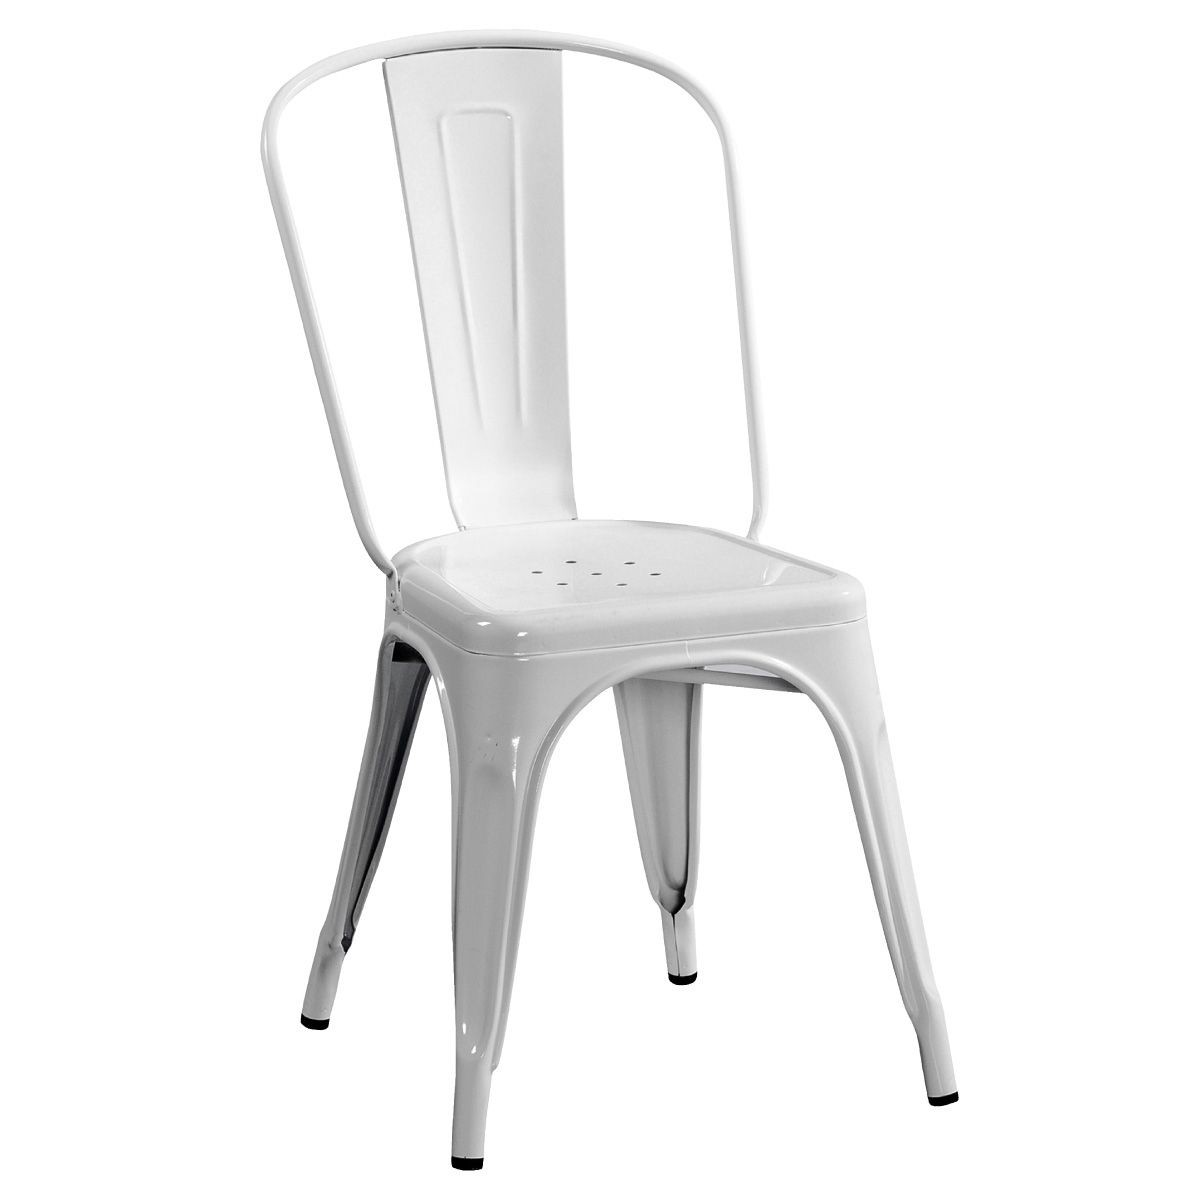 Chaise Industrielle Tolix Chaise Tolix Blanc Table De Lit A Roulettes